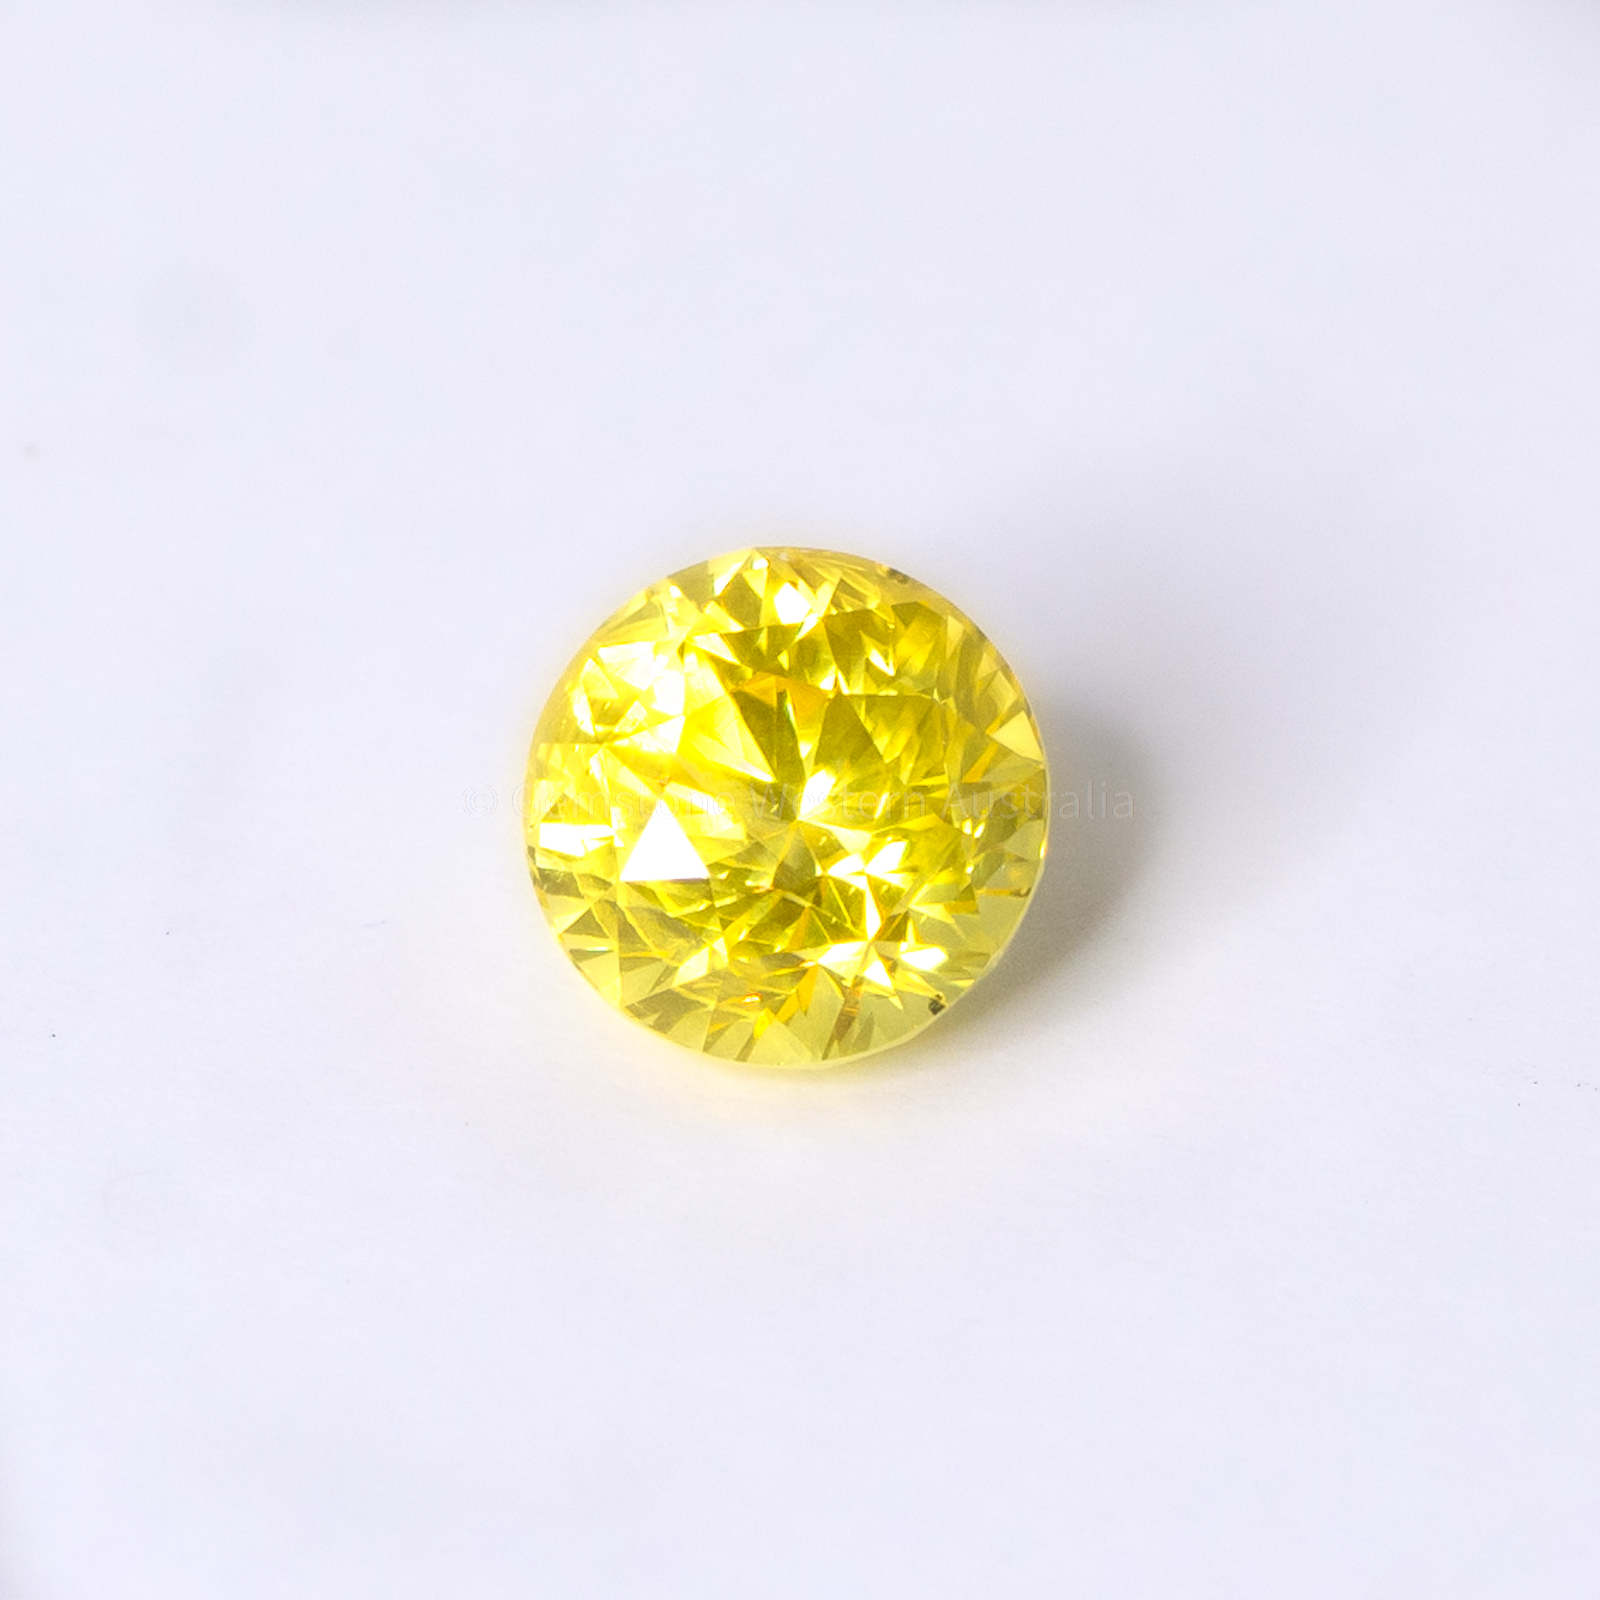 2.16 CT NATURAL YELLOW SAPPHIRE ROUND SHAPE UNHEATED